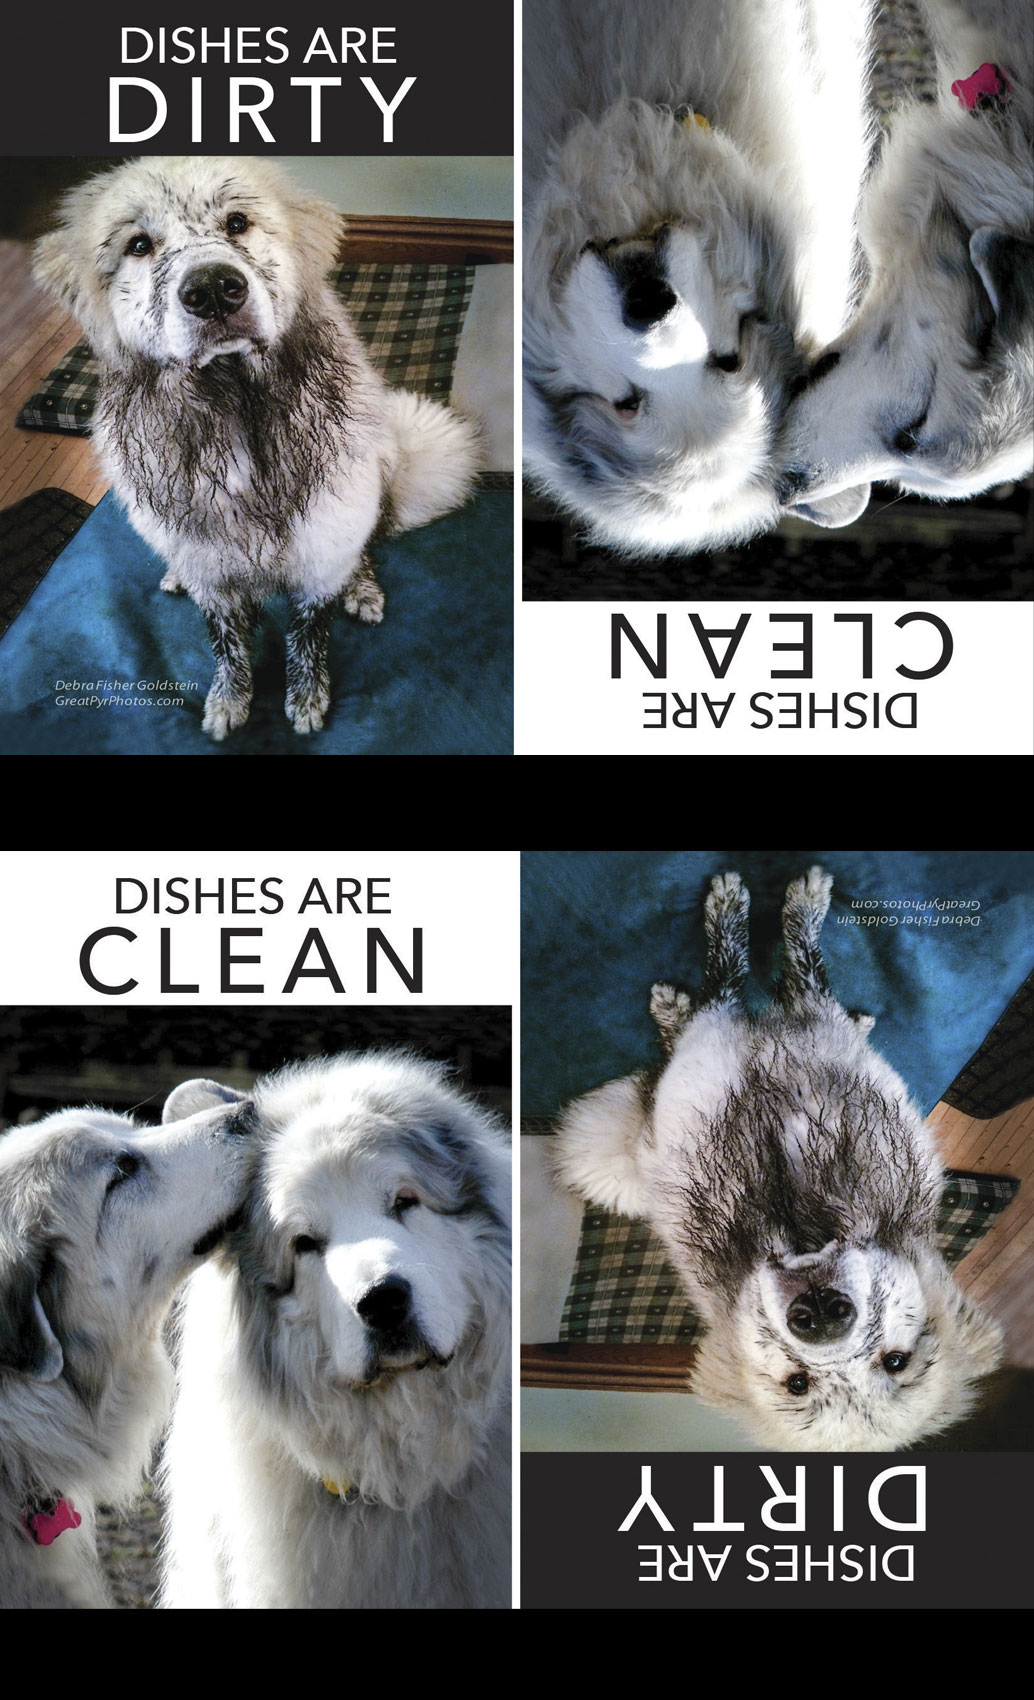 Dishes-are-clean-magnet